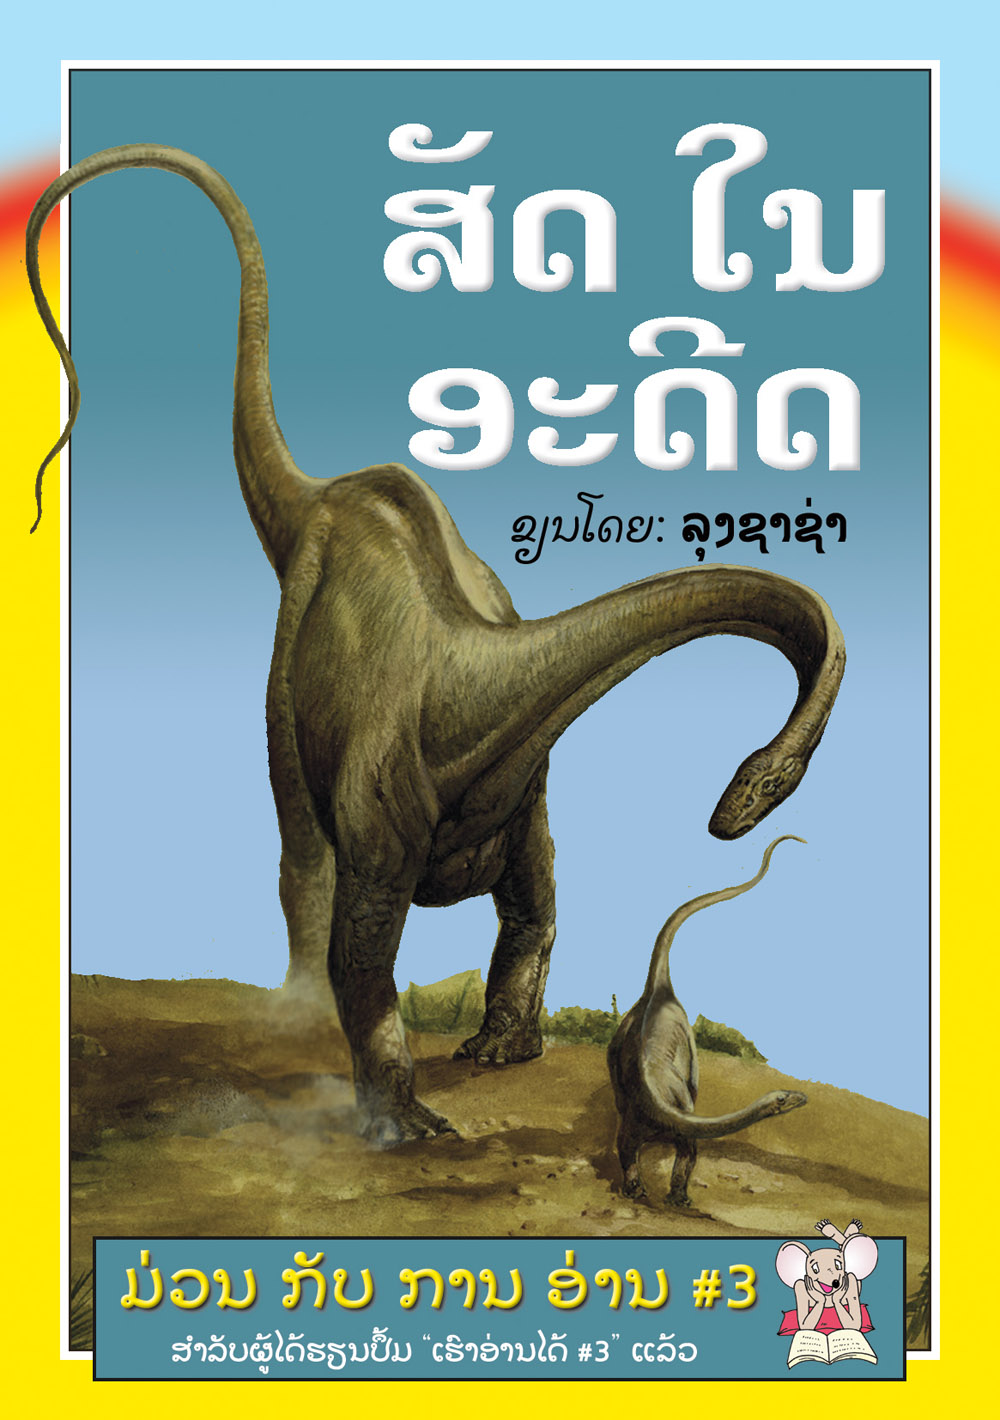 Animals of the Past large book cover, published in Lao language